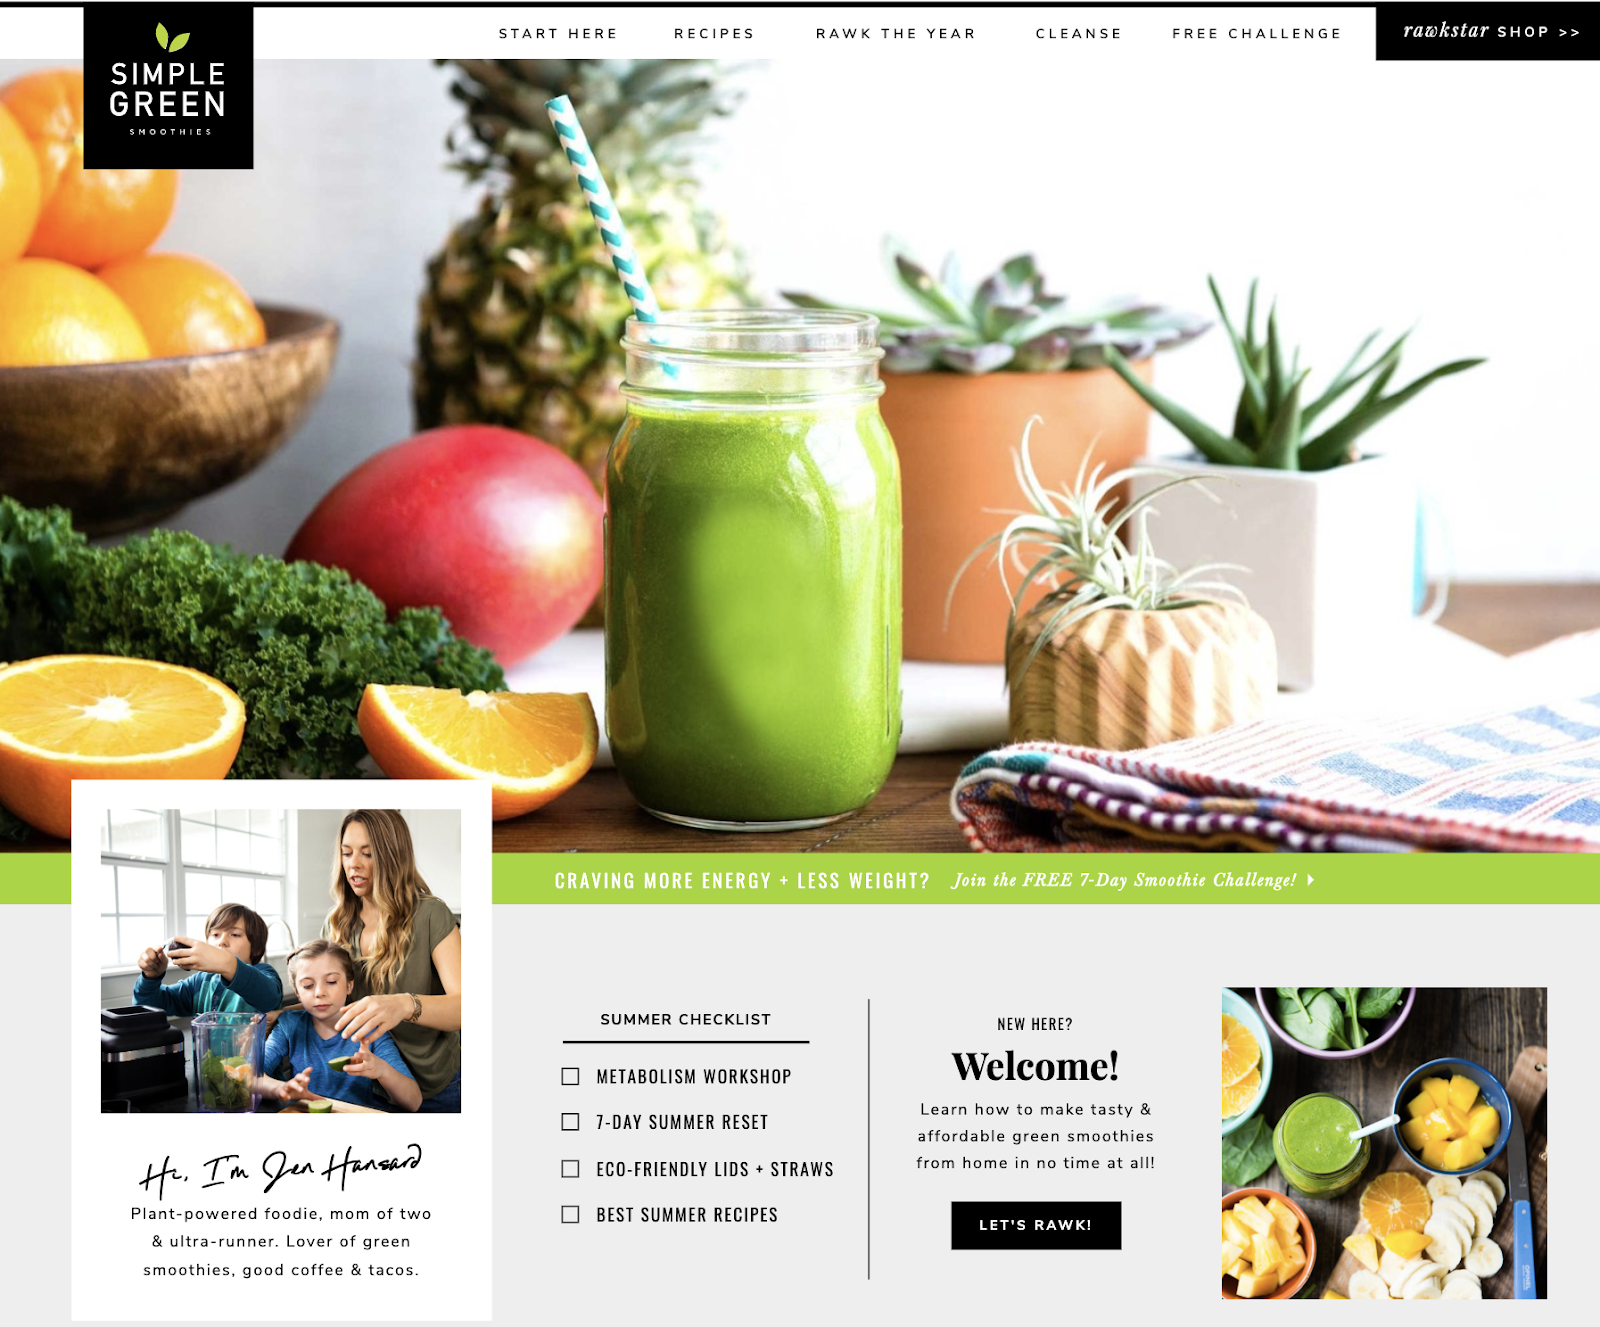 how-i-started-a-30k-month-smoothie-recipe-business-from-home